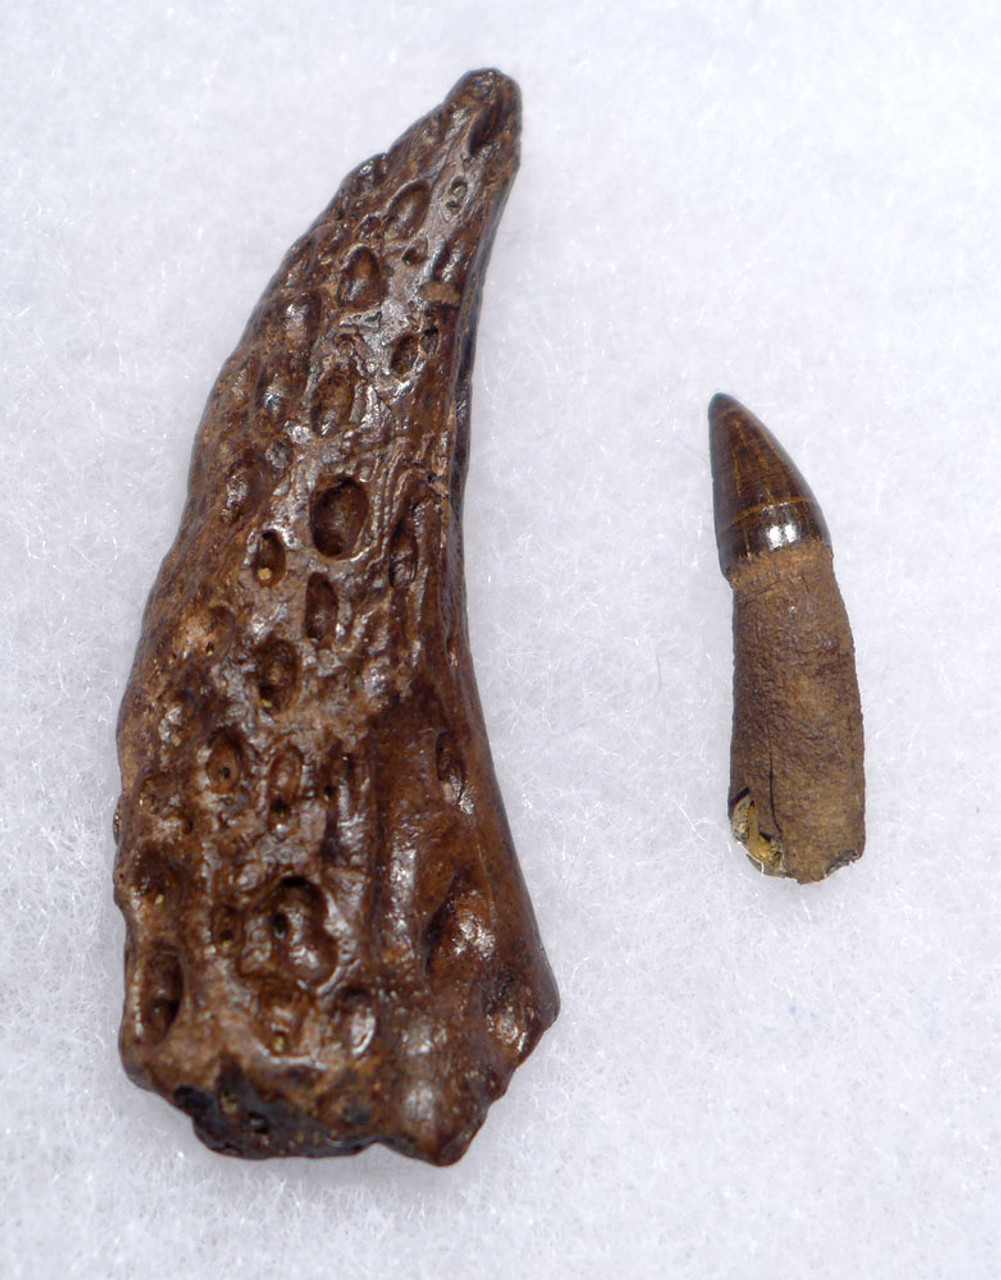 CRETACEOUS FOSSIL LEIDYOSUCHUS CROCODILE TOOTH WITH JAW FRAGMENT FROM HELL CREEK  *CROC082